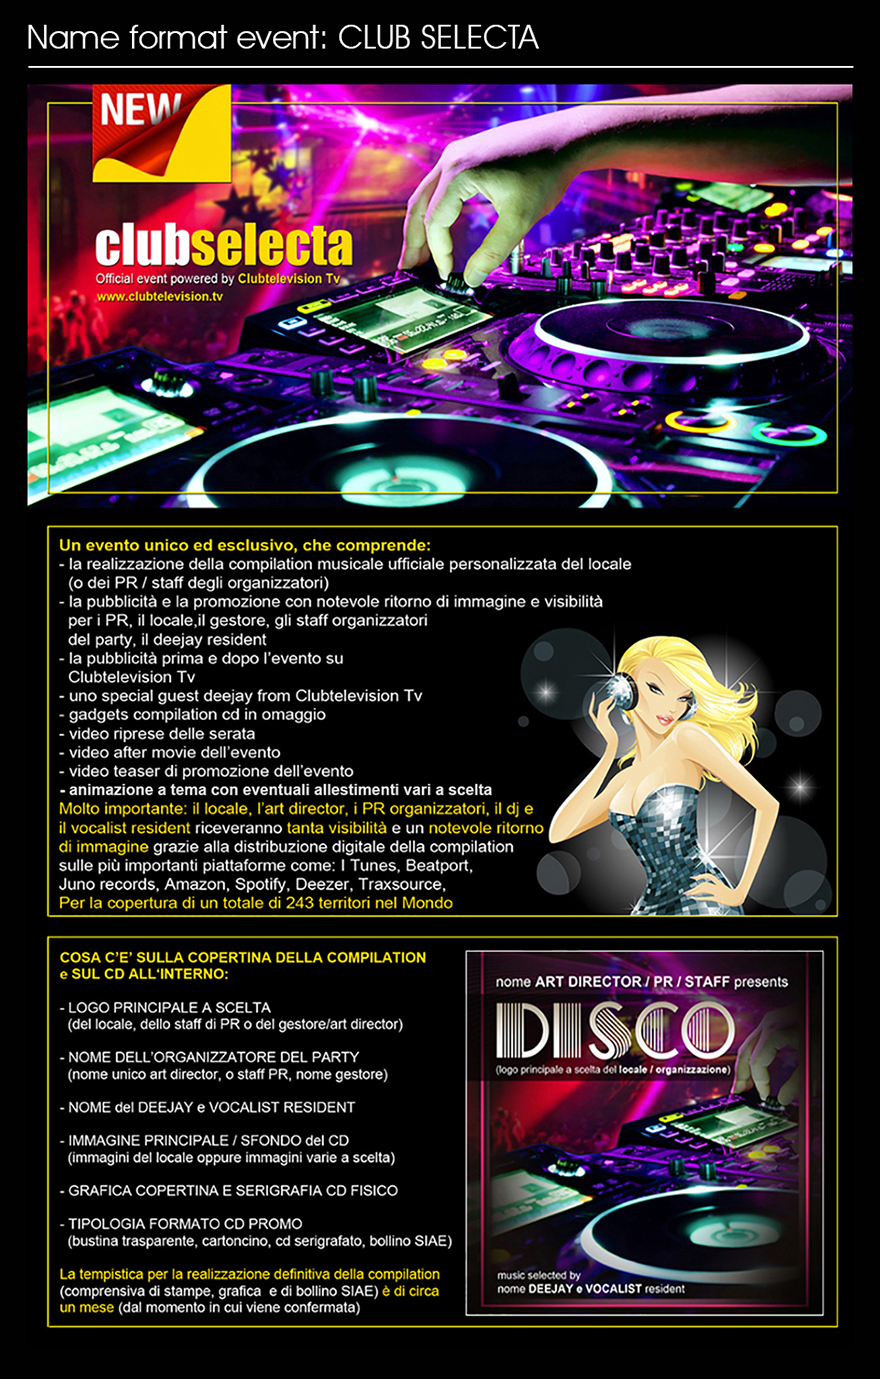 CLUB-SELECTA-PARTY-OFFICIAL